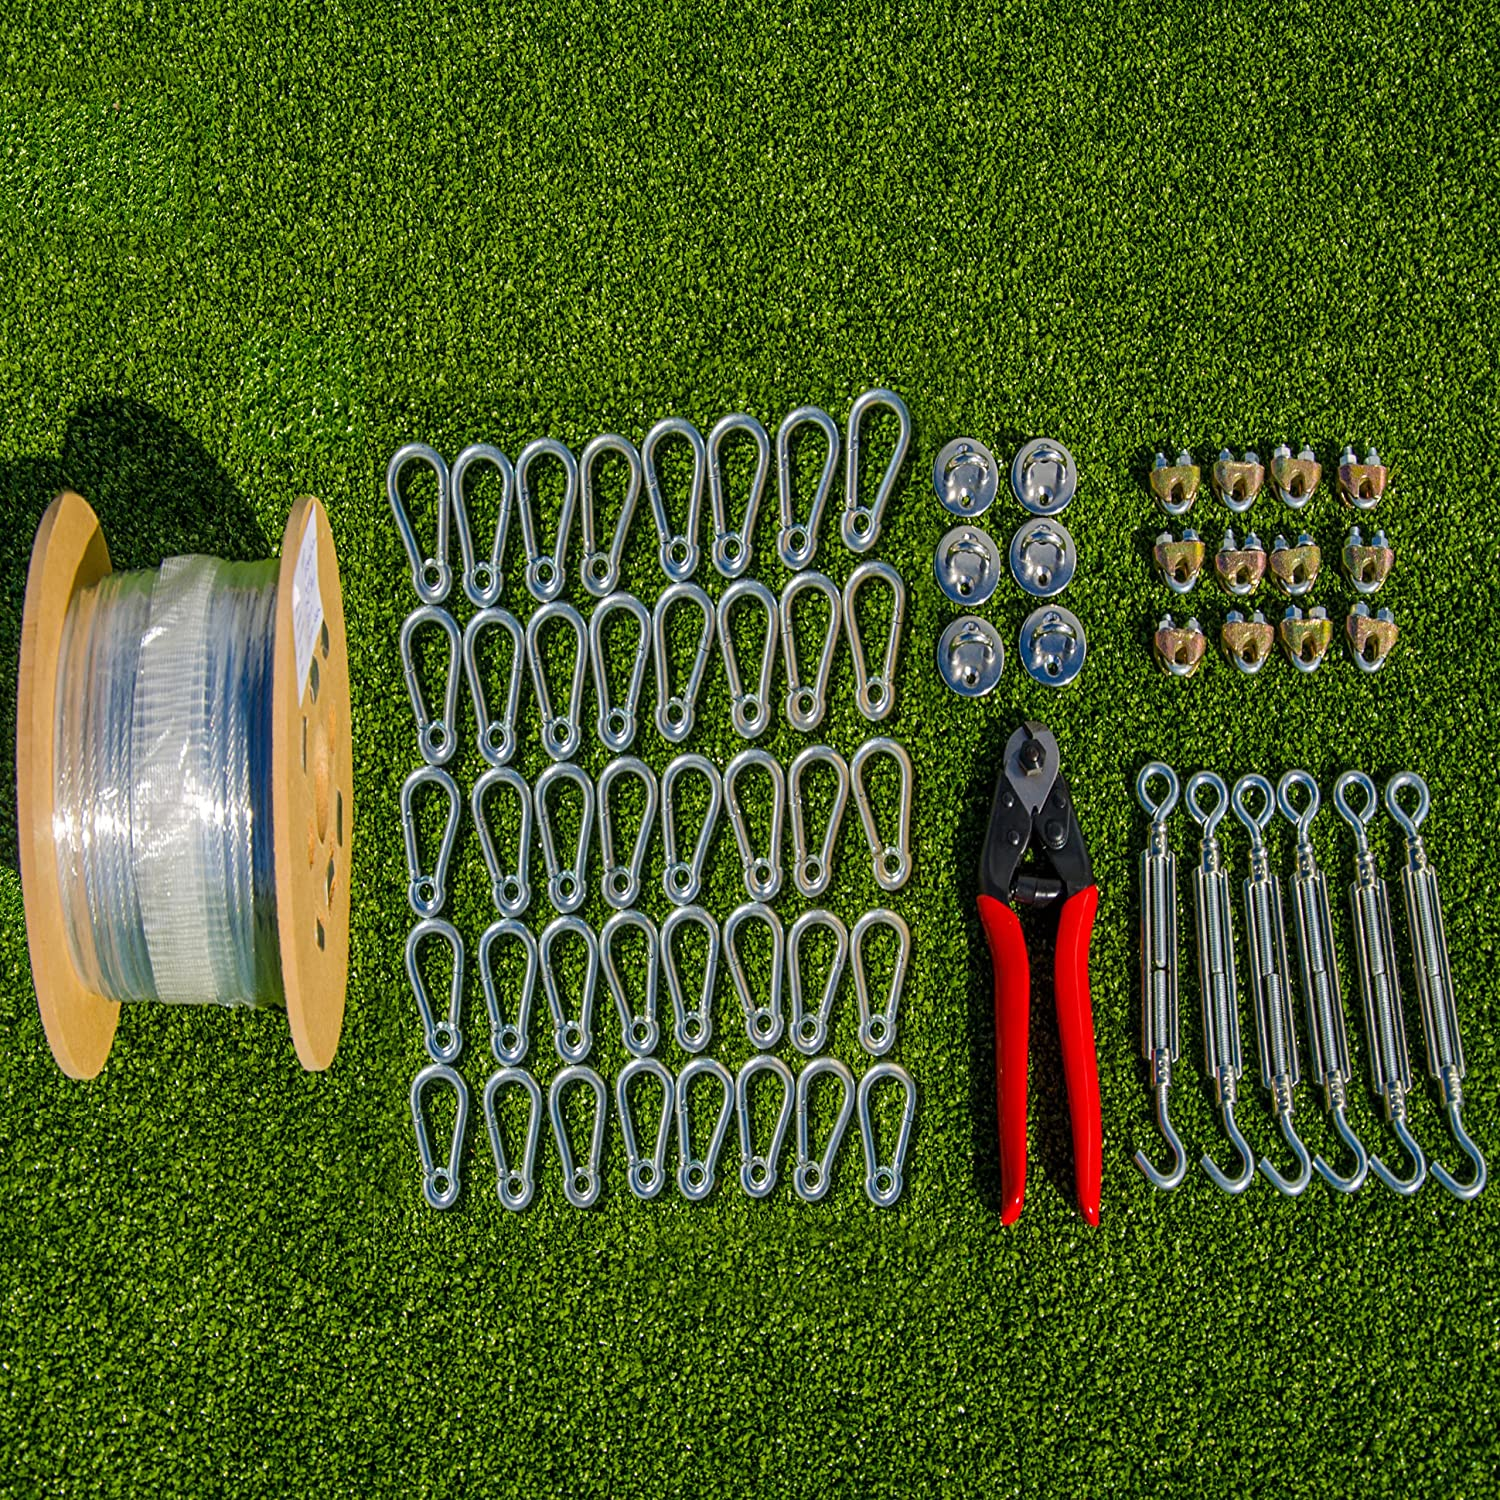 Amazon.com : Batting Cage Netting Wire Tension Kit   Everything Youu0027ll Need  To Easily Hang A Baseball Batting Cage [Net World Sports] : Sports U0026  Outdoors